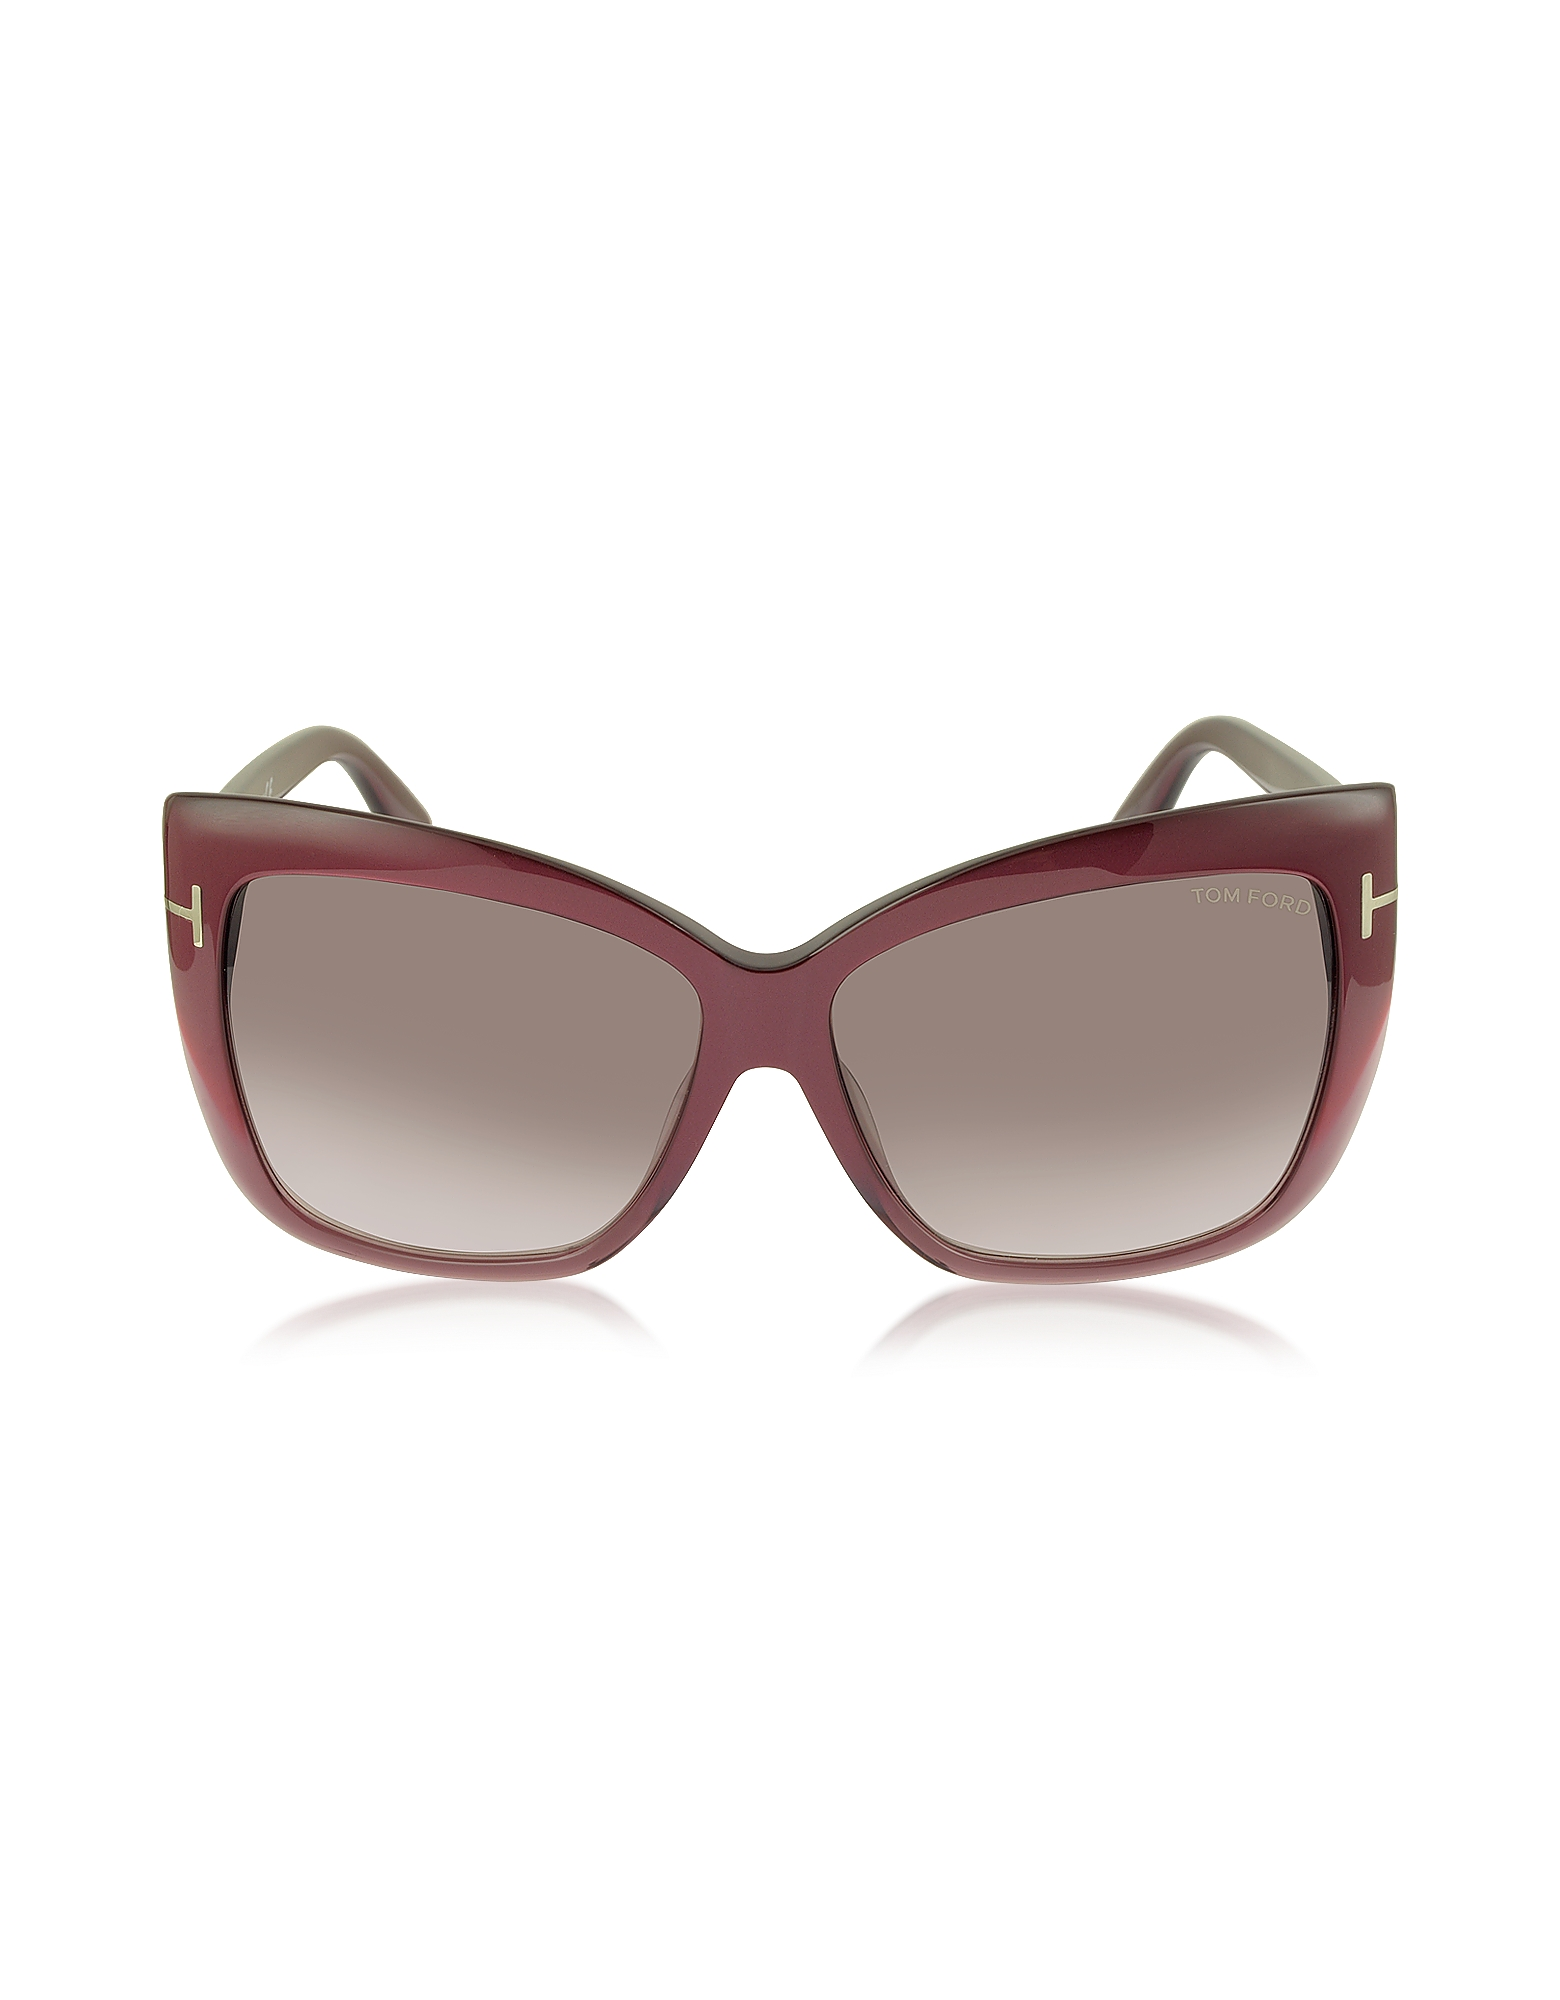 Tom Ford Designer Sunglasses, IRINA FT0390 Oversized Squared Sunglasses